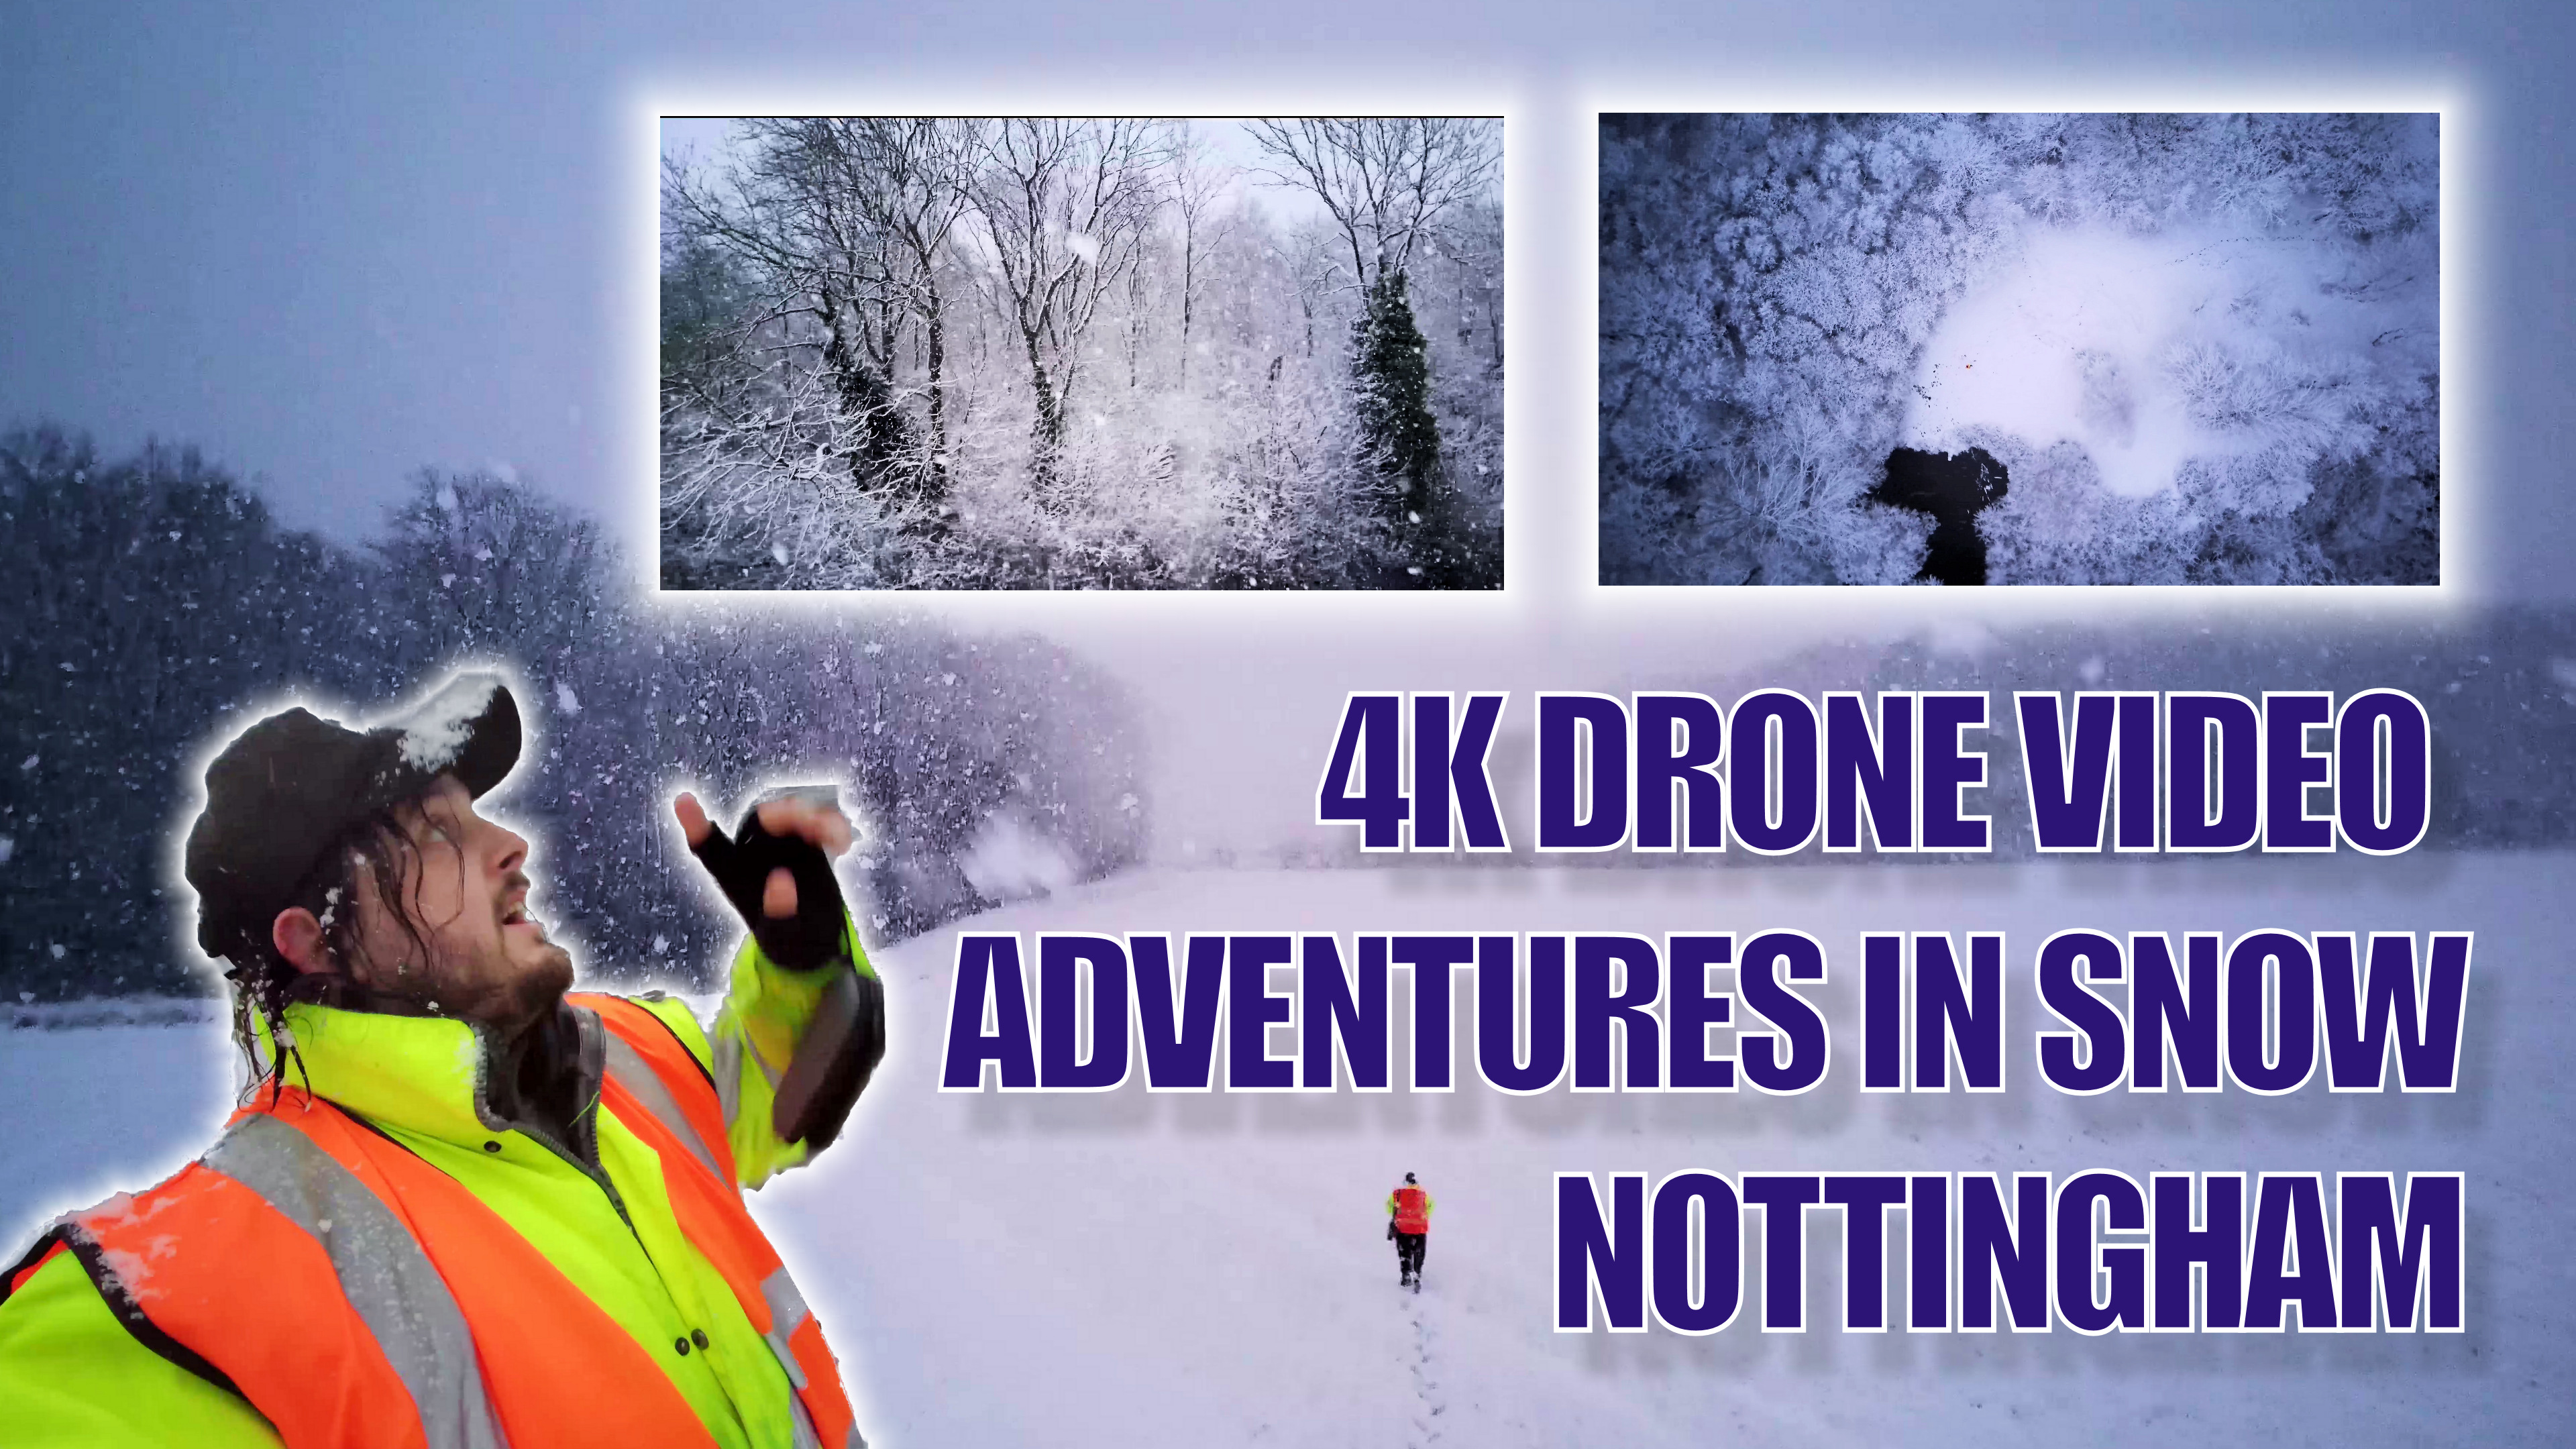 Adventures in snow, Nottingham. 4K drone video and vlog